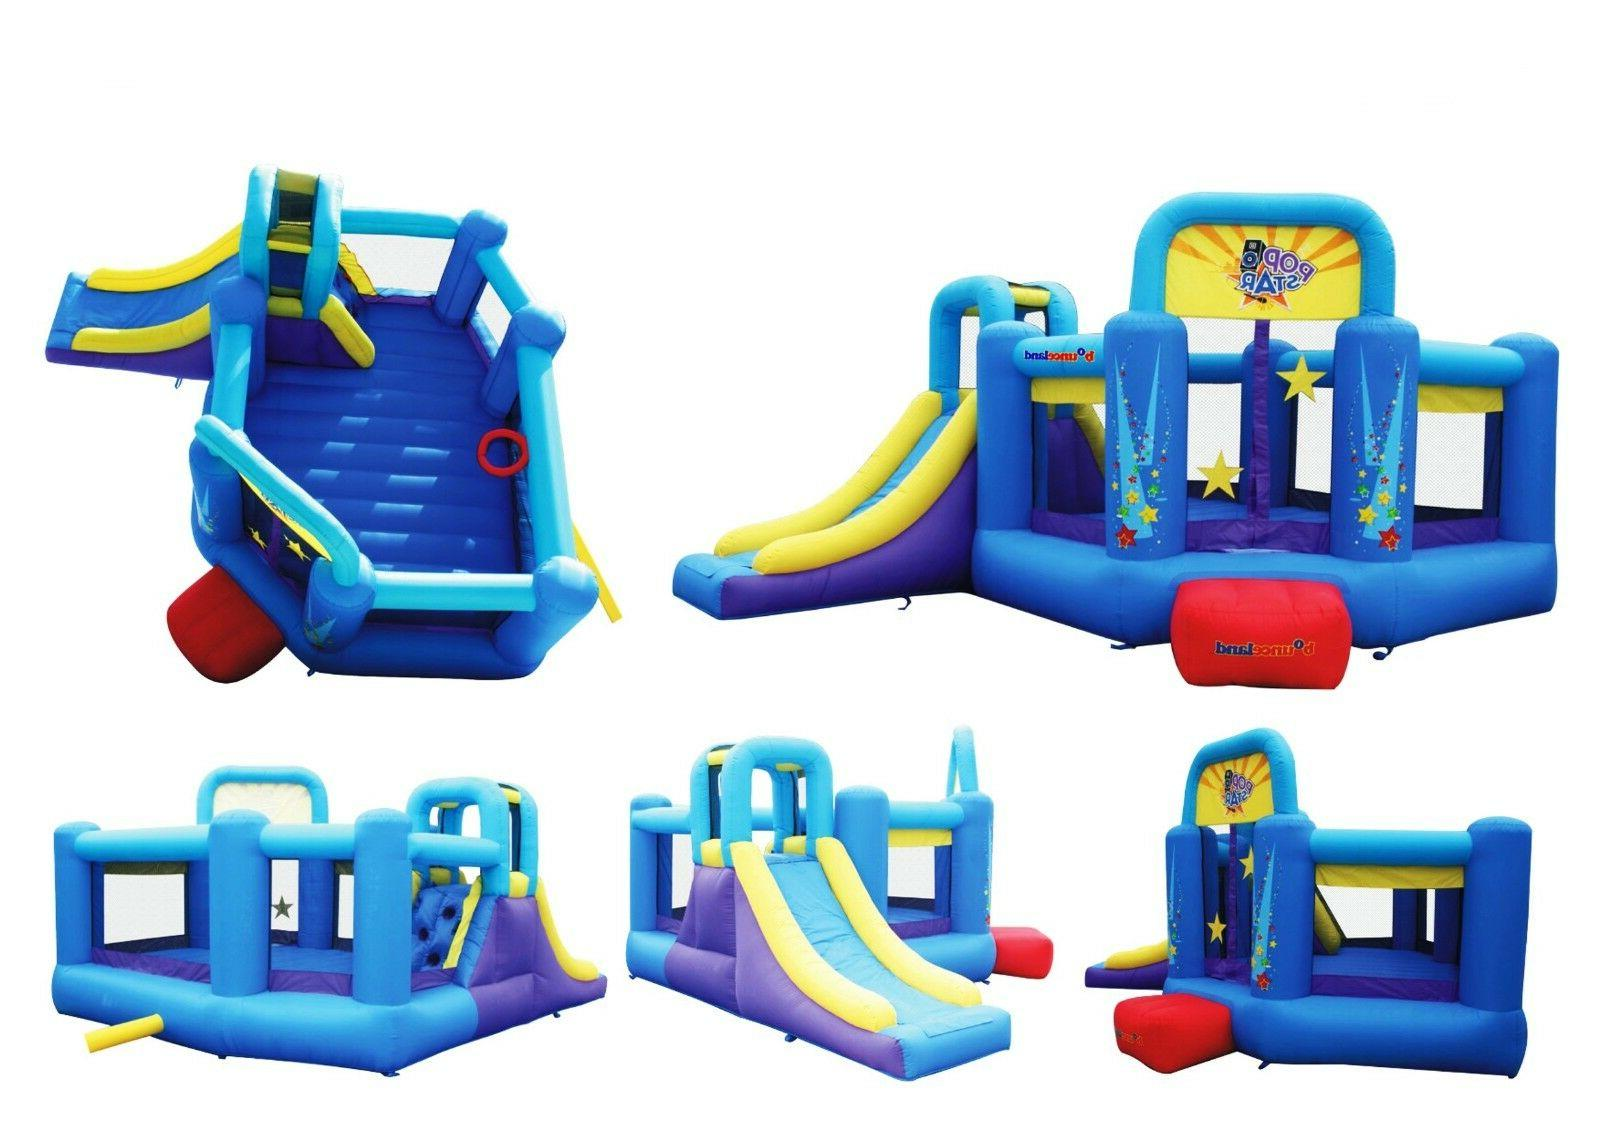 Bounceland Bounce Pop Star slide